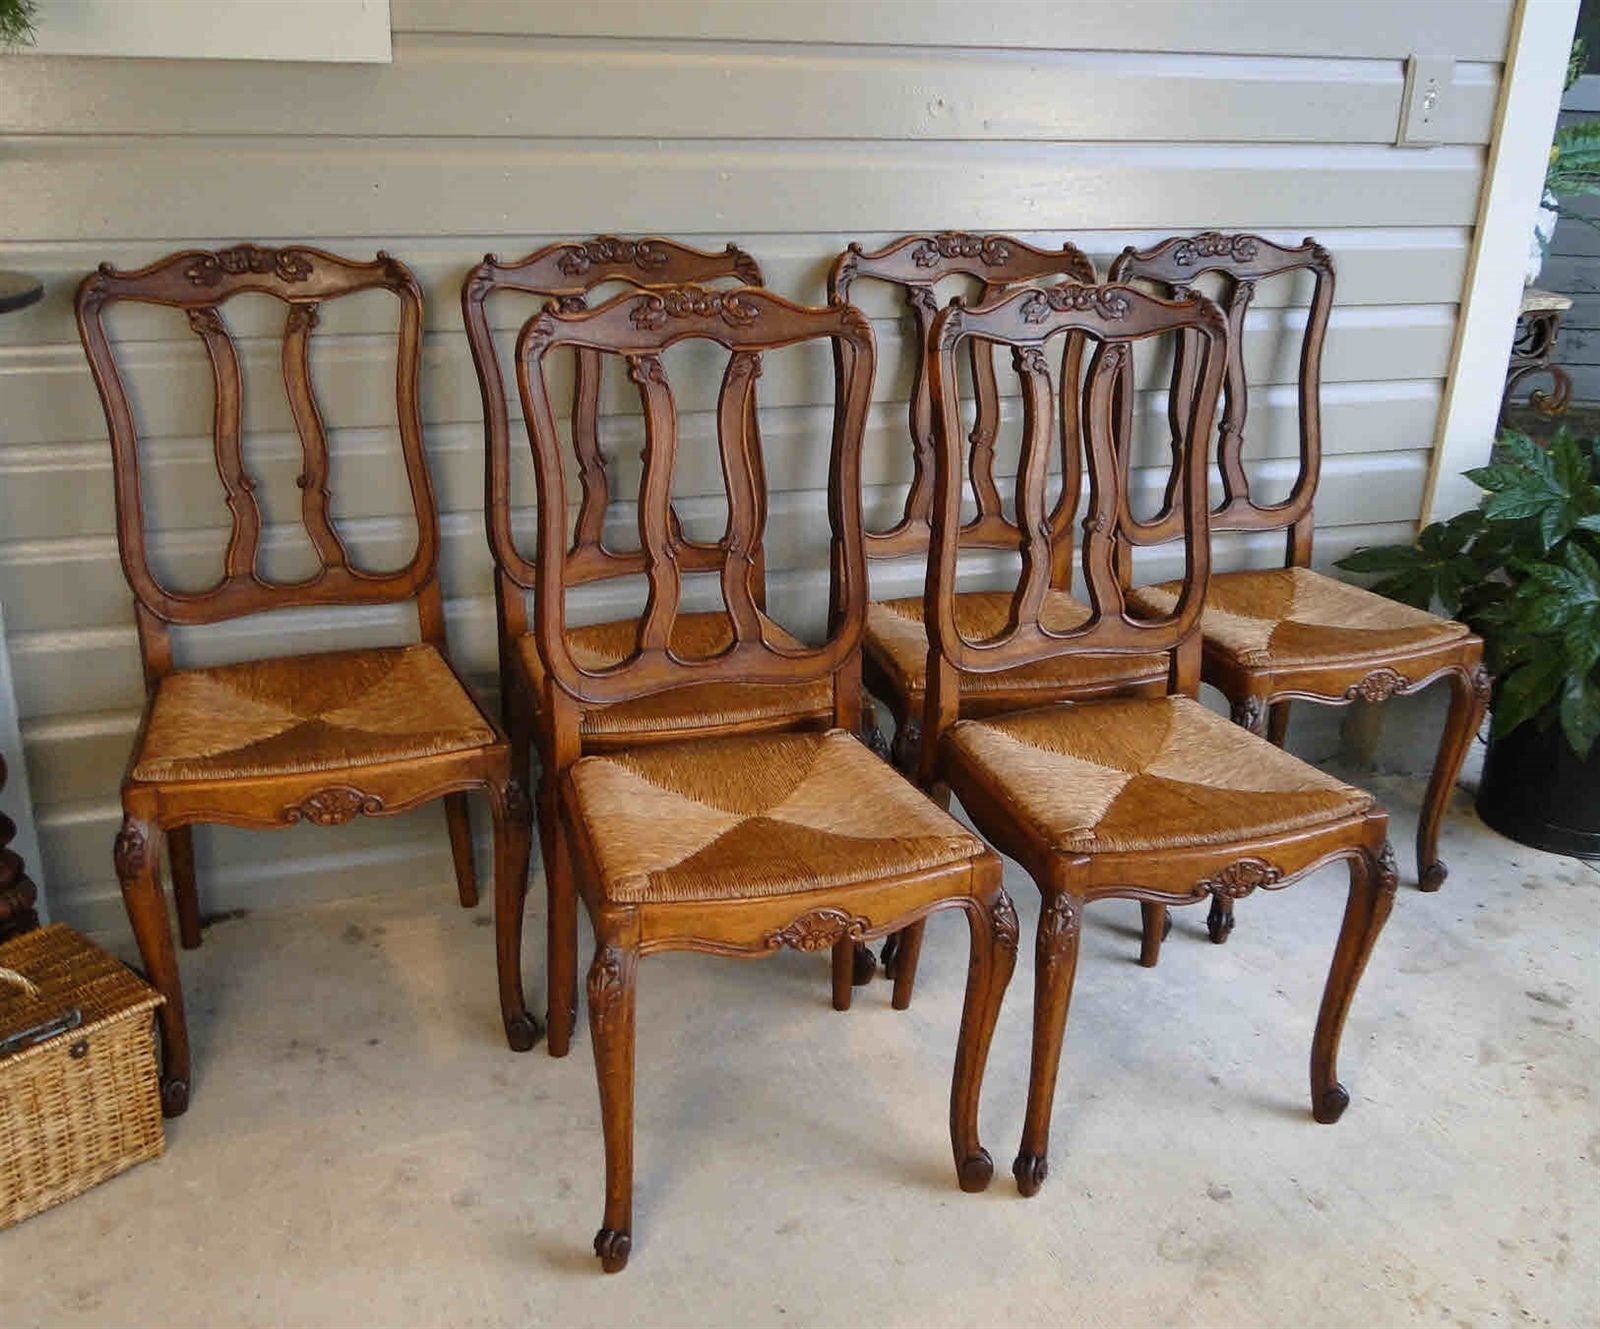 French Antique Dining Chairs with Rush Seats, Shell Carvings and Tall Backs and Cabriole Legs